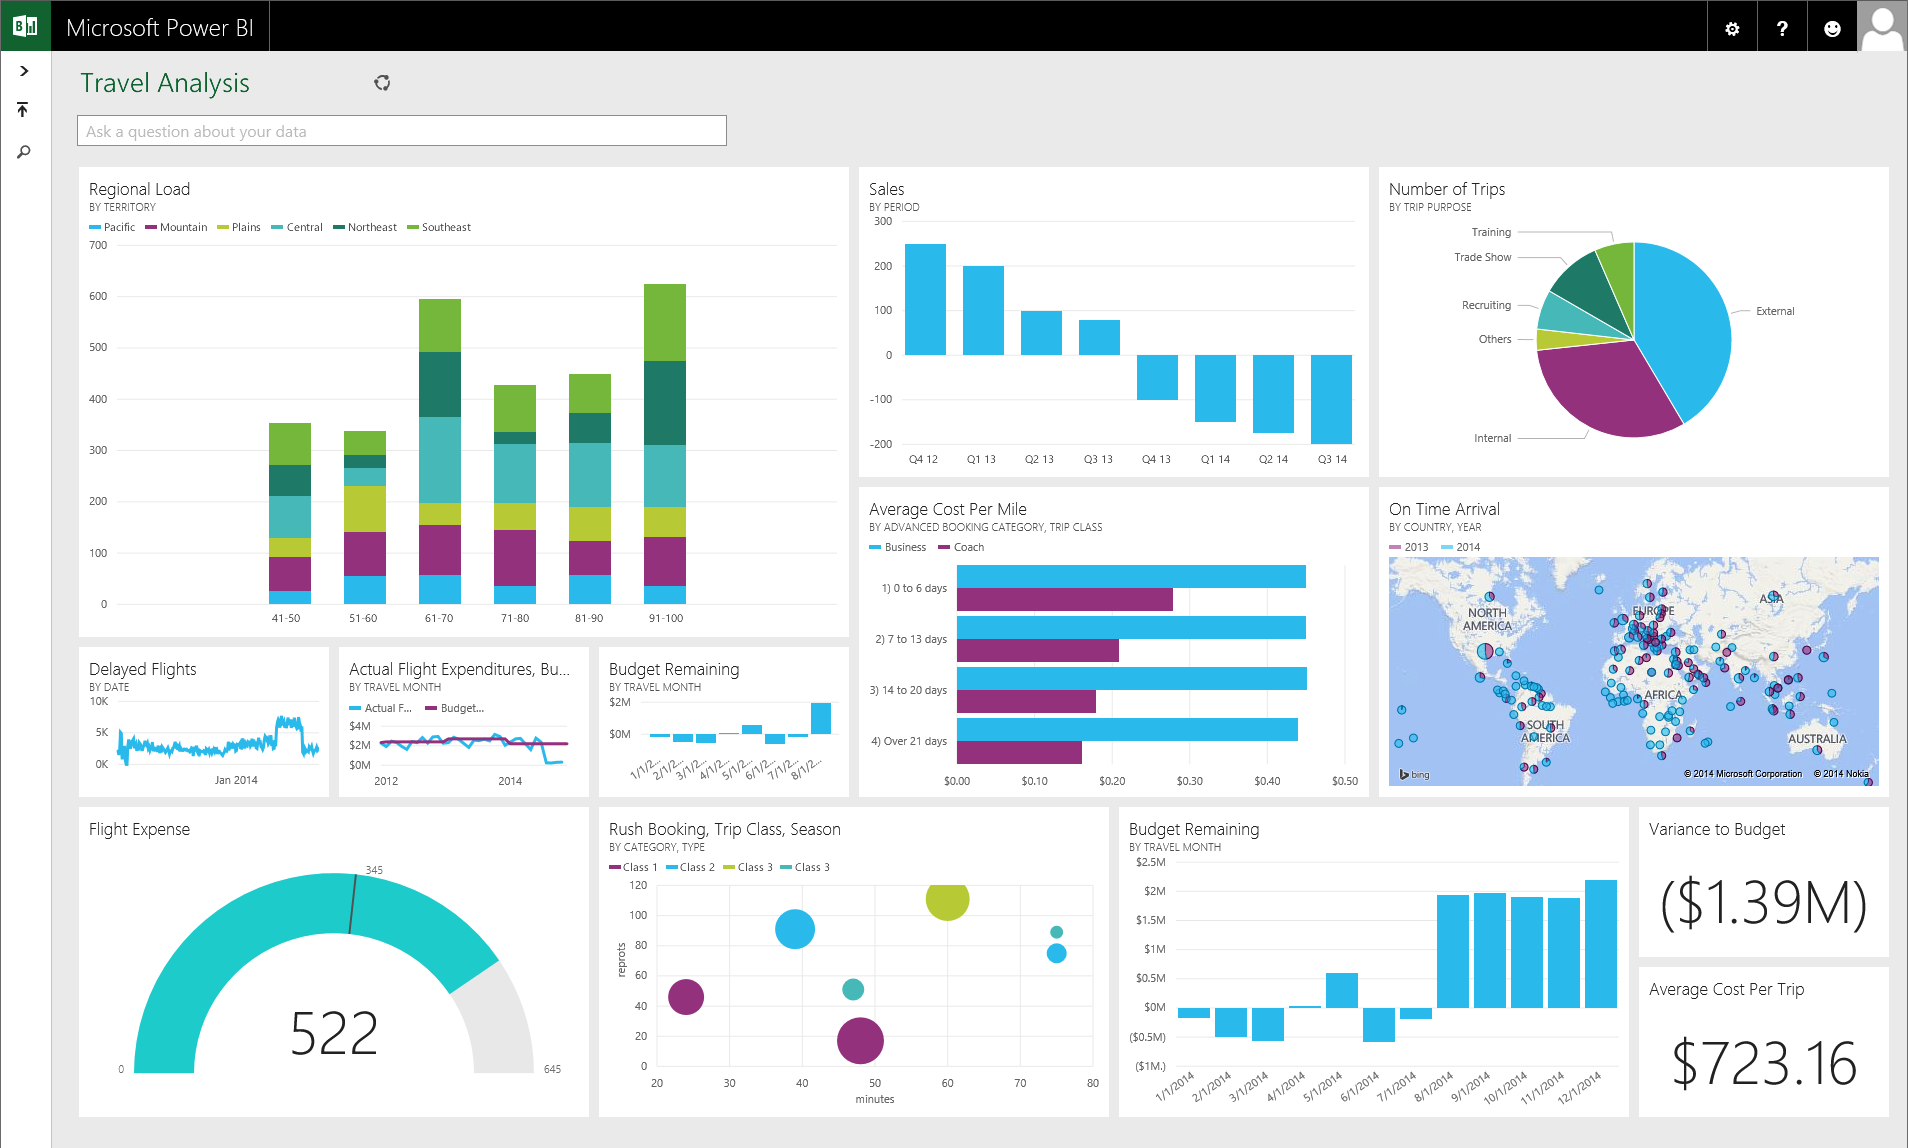 Ein Screenshot des BI-Tools Microsoft Power BI